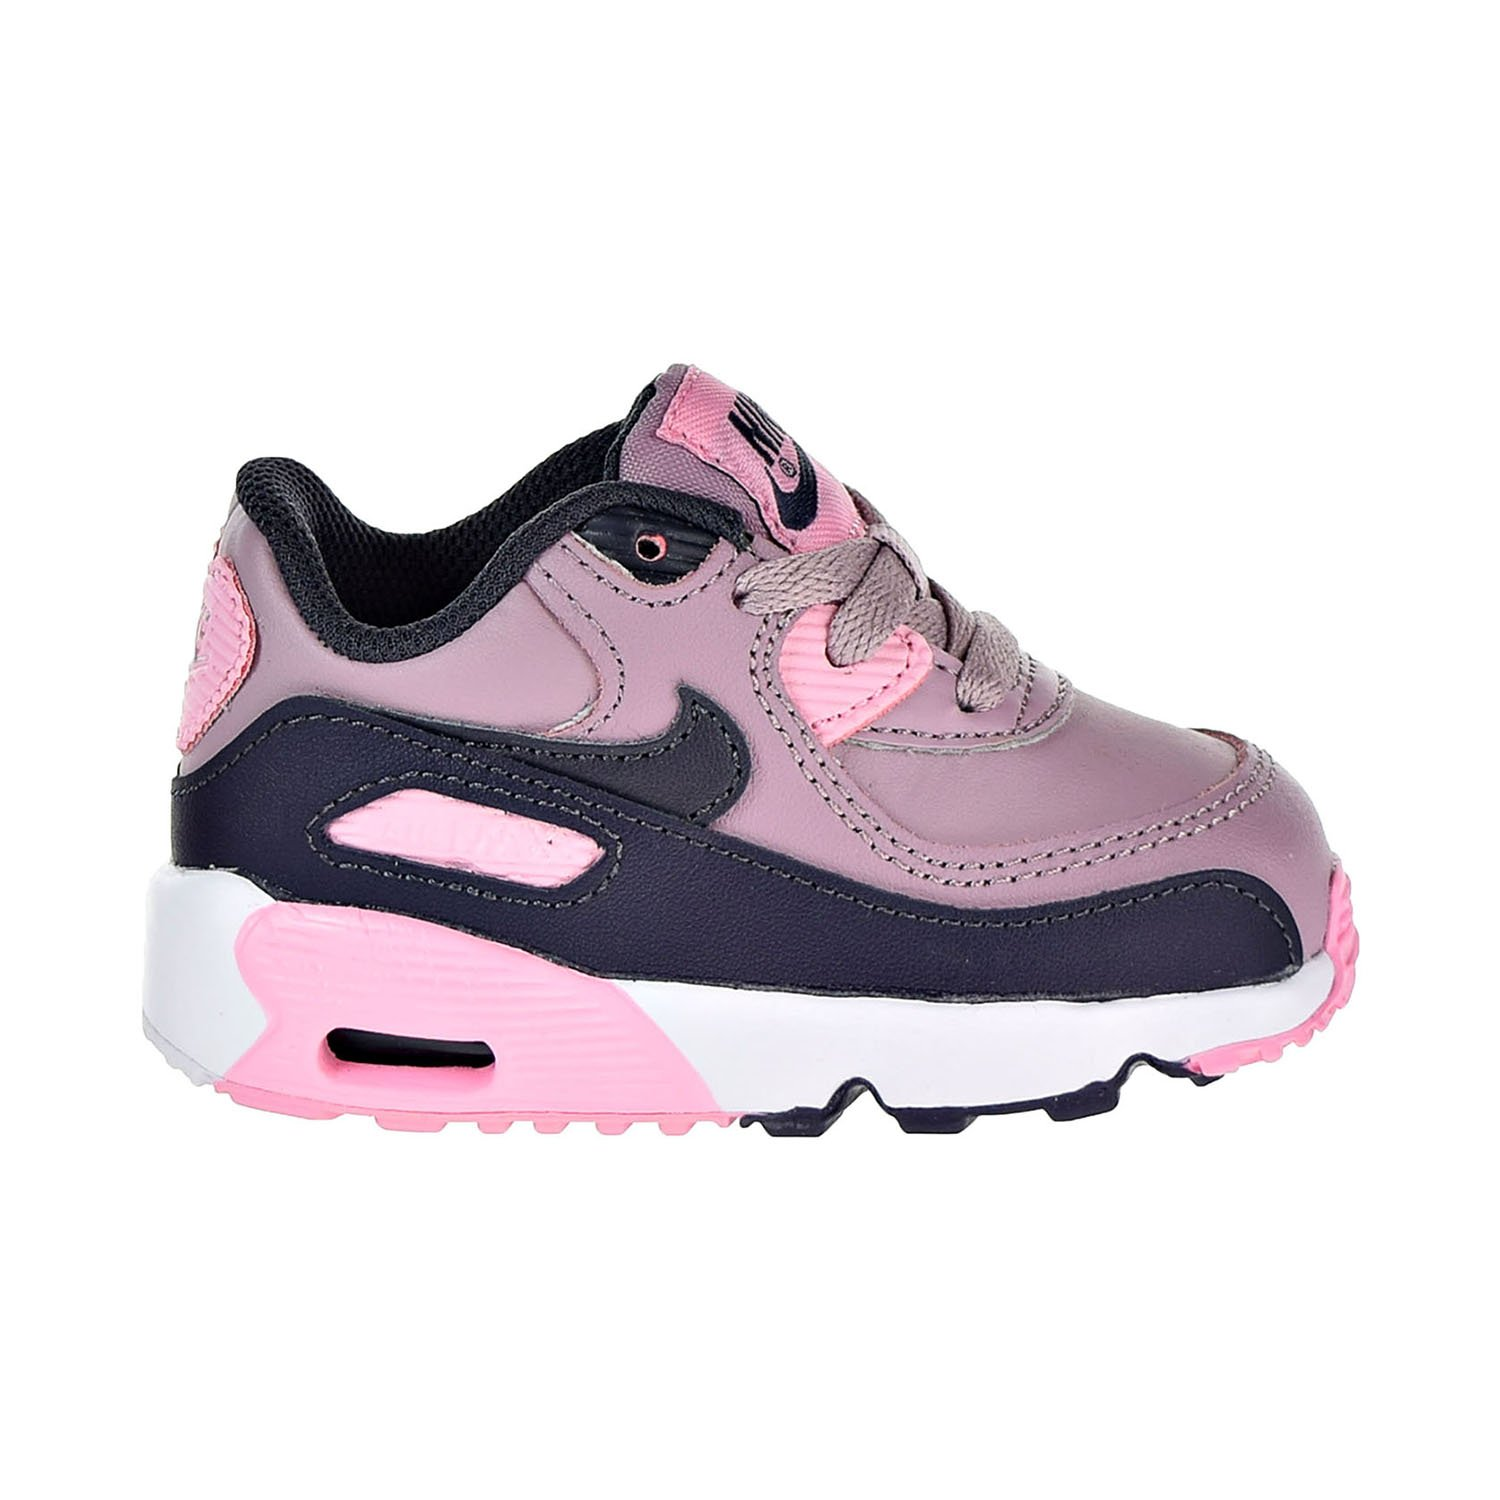 NIKE Air Max 90 Leather Toddler's Shoes Elemental Rose 833379 602